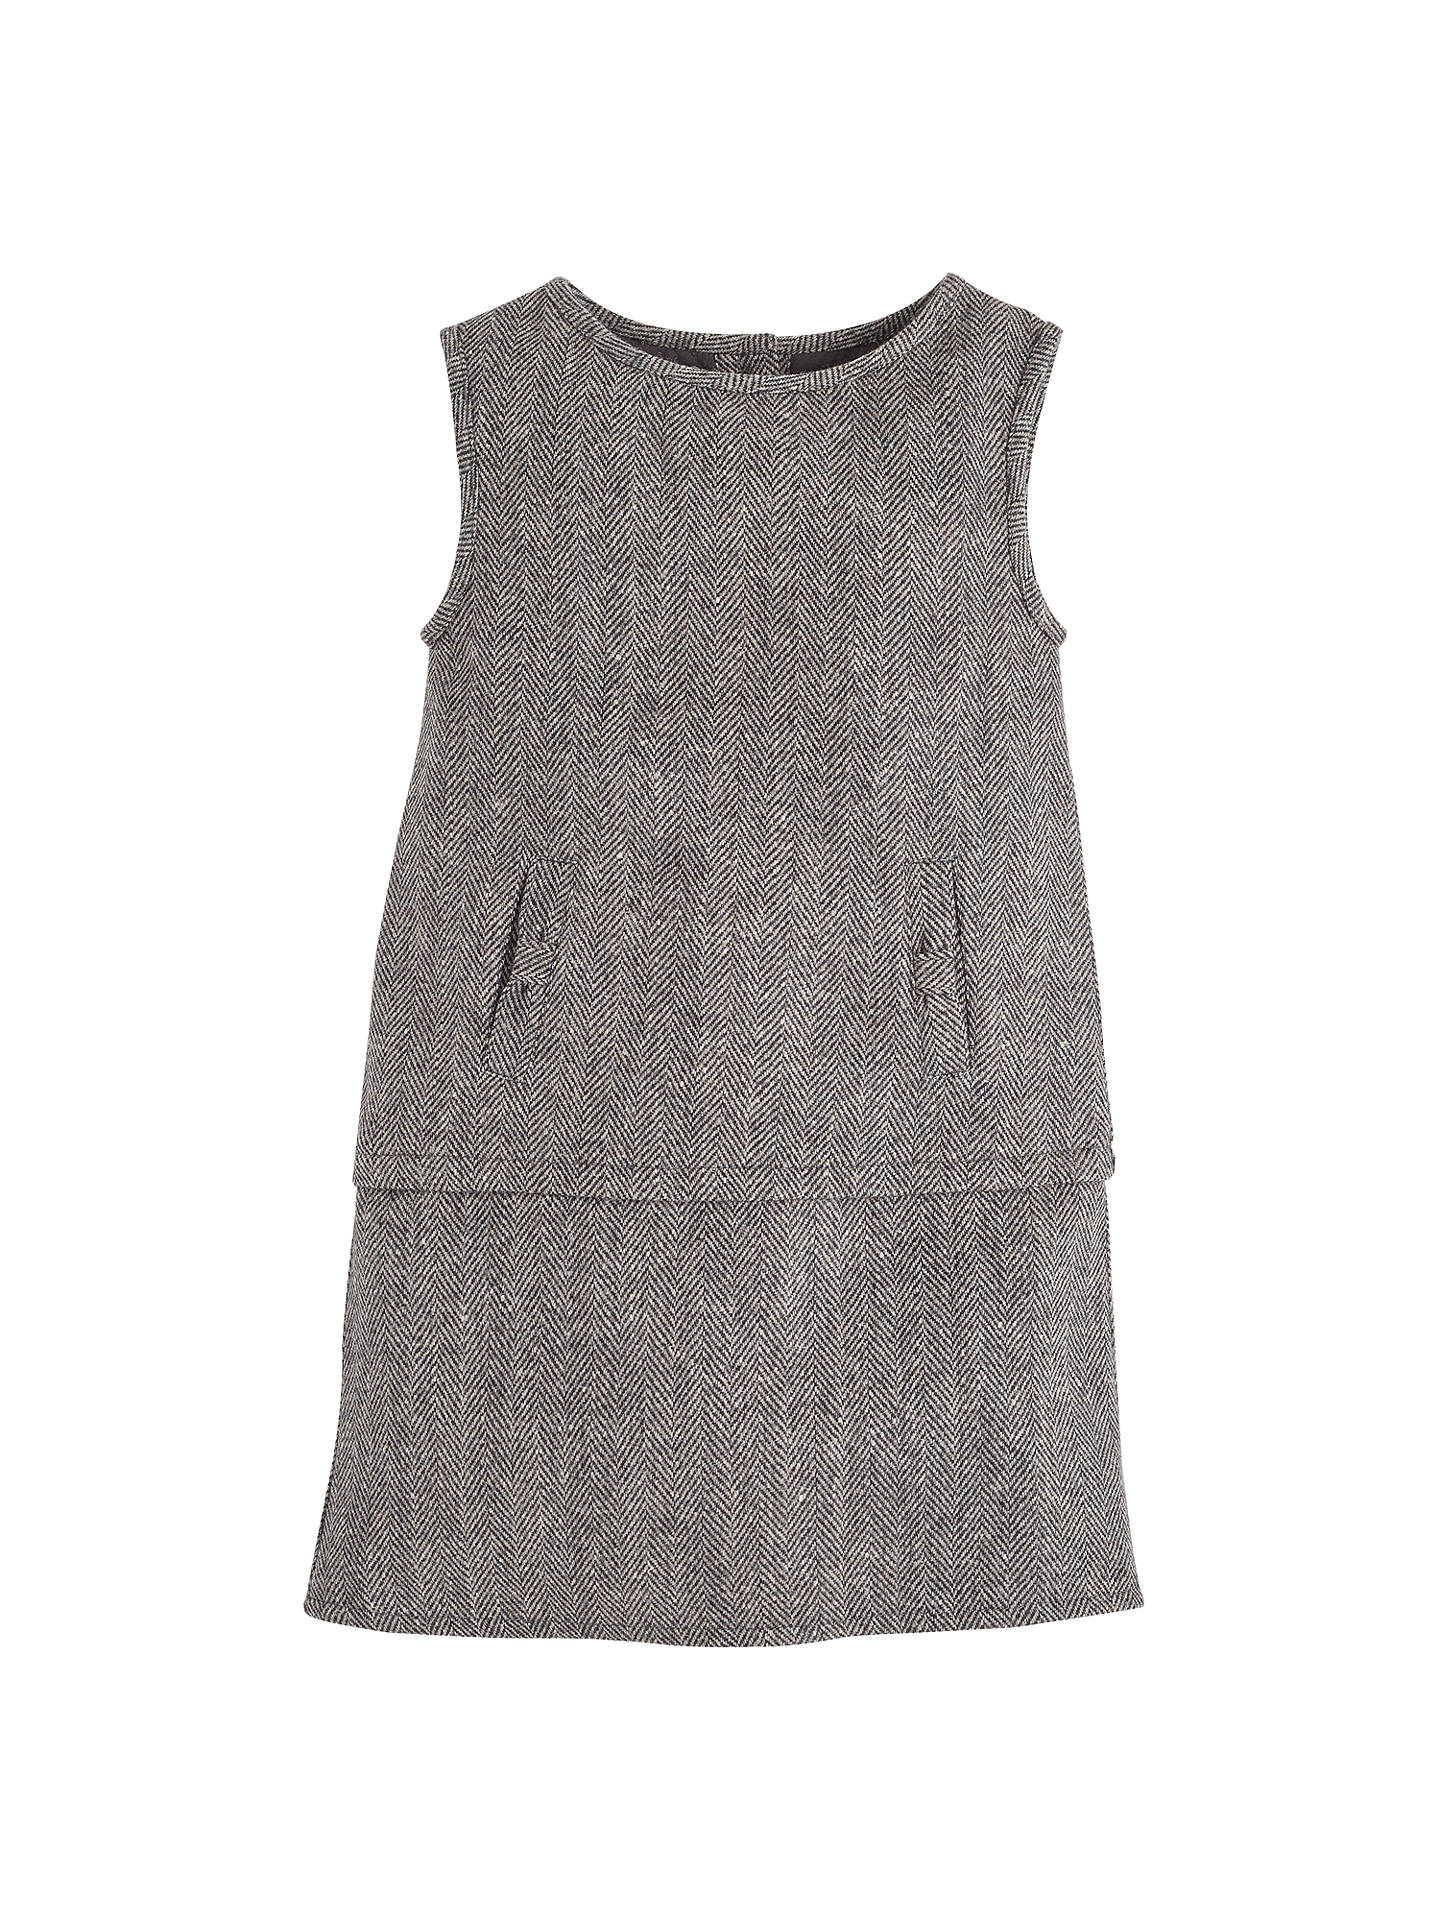 official price new products for promo code Angel & Rocket Girls' Tweed Pinafore Dress, Brown at John ...